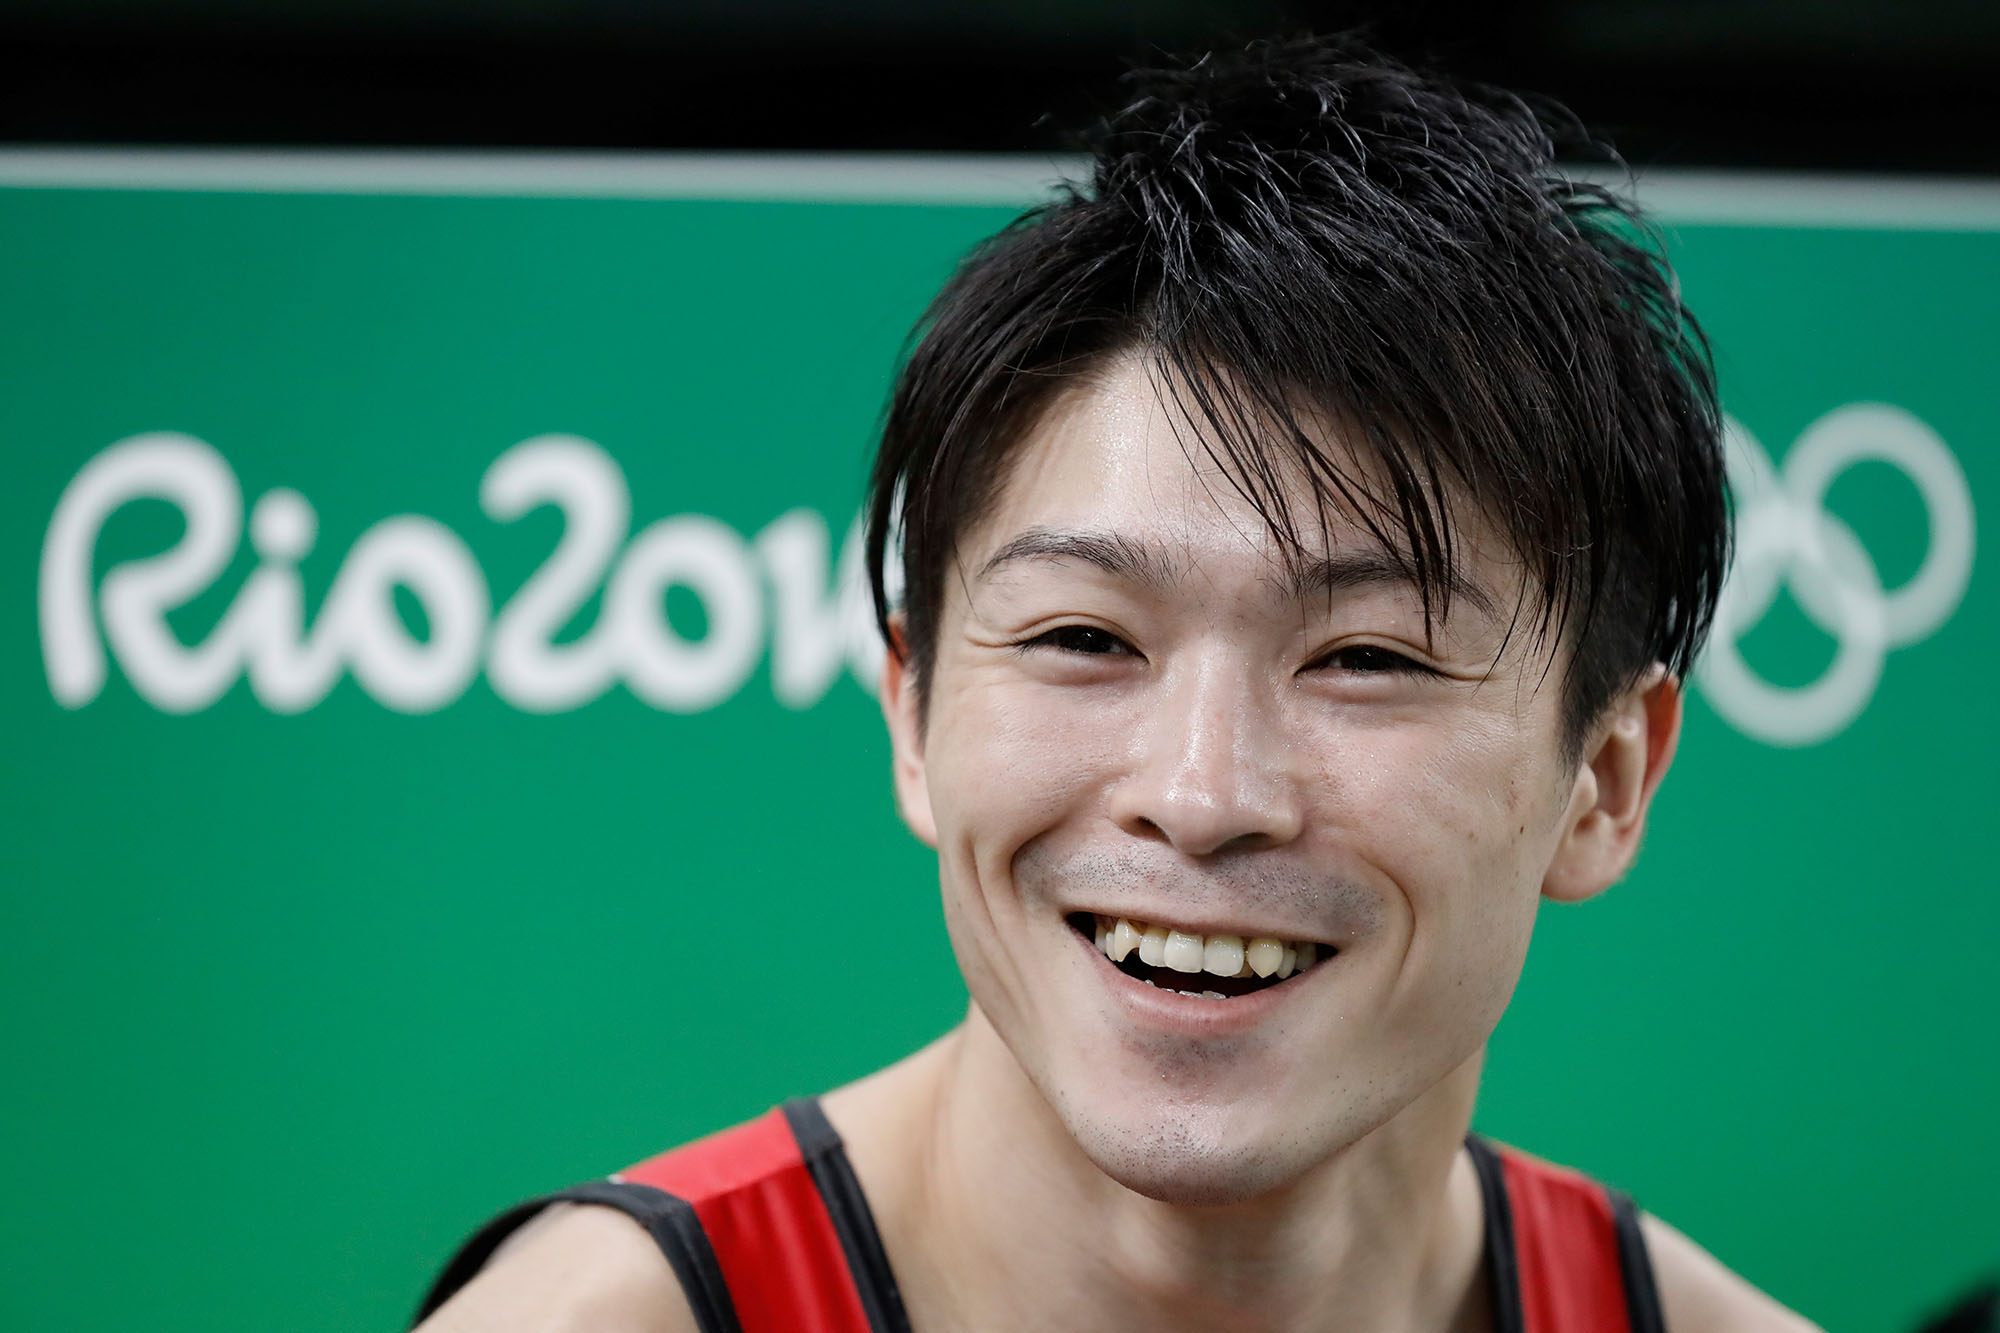 Japan's Kohei Uchimura smiles during a practice session of the men's Artistic gymnastics at the Olympic Arena on August 3, 2016 ahead of the Rio 2016 Olympic Games in Rio de Janeiro. / AFP / Thomas COEX        (Photo credit should read THOMAS COEX/AFP/Getty Images)